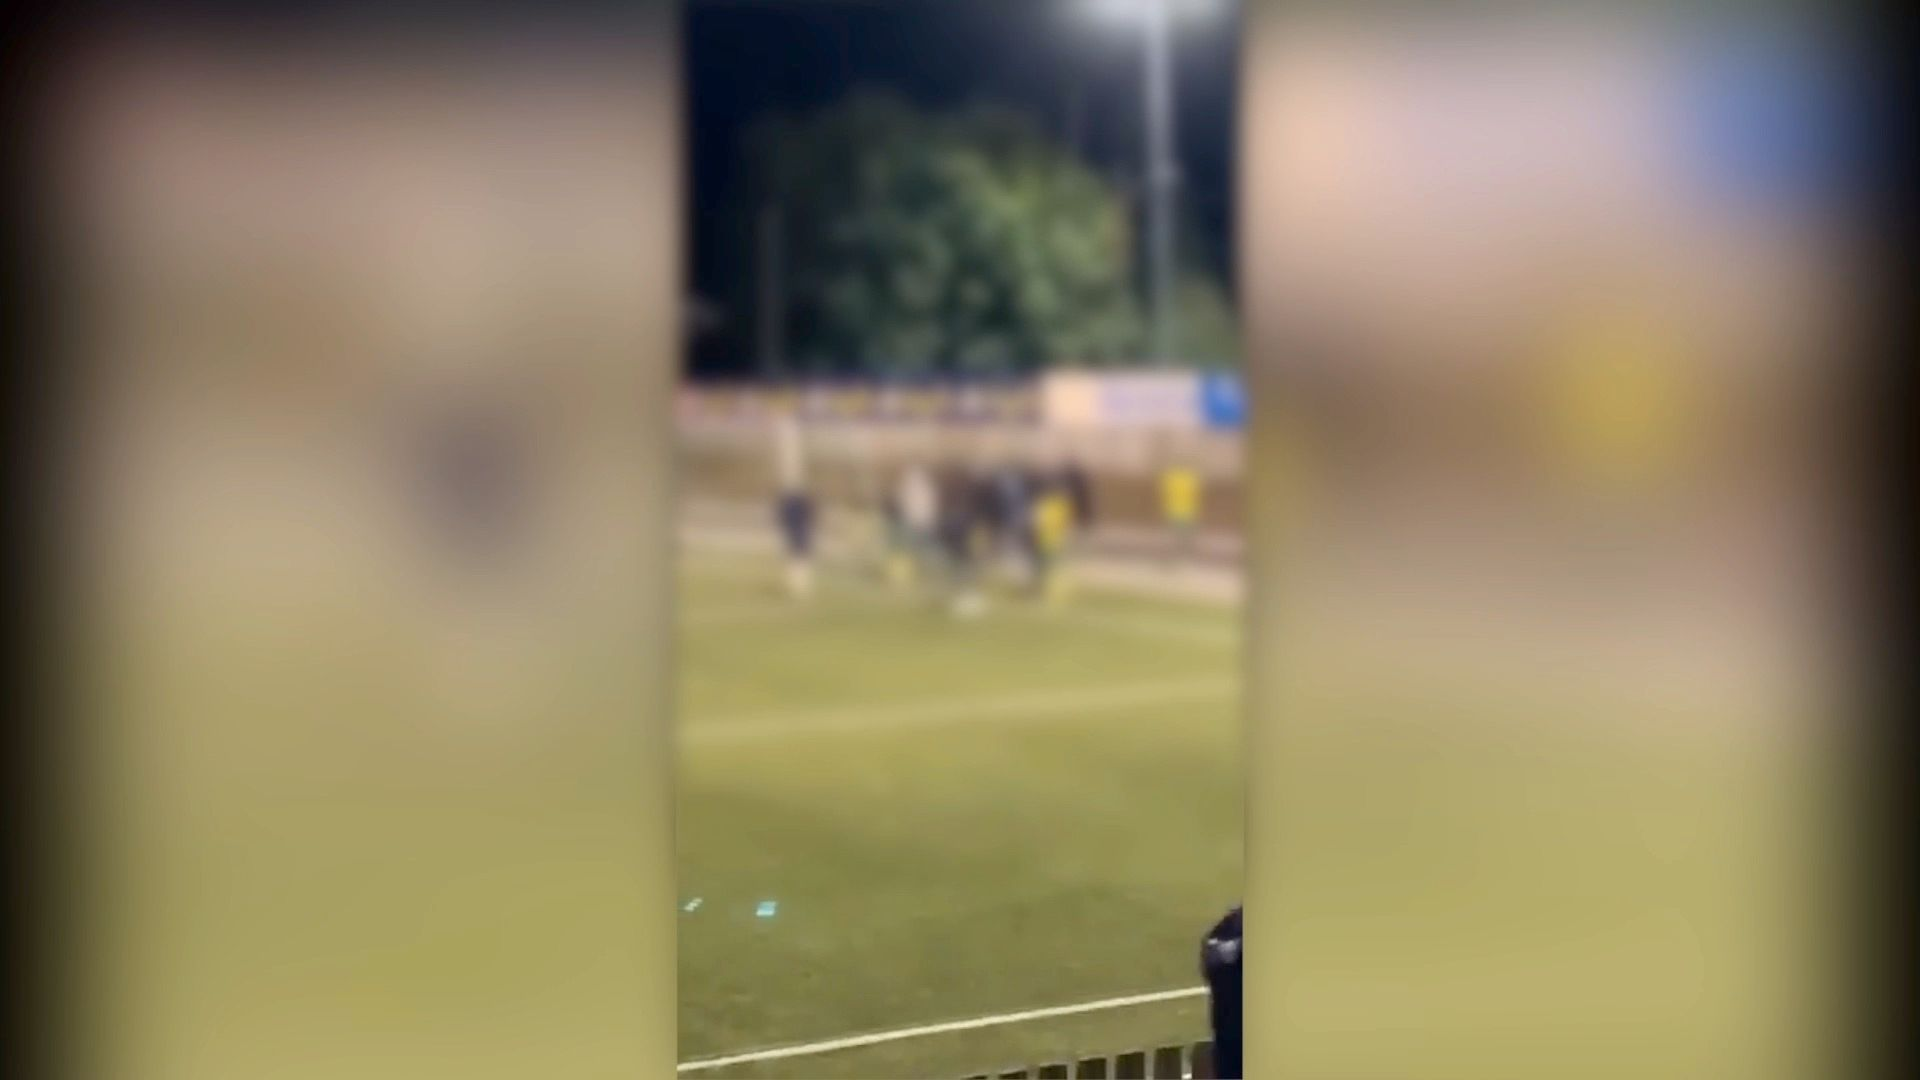 Reported to police after a fight at a youth match ...